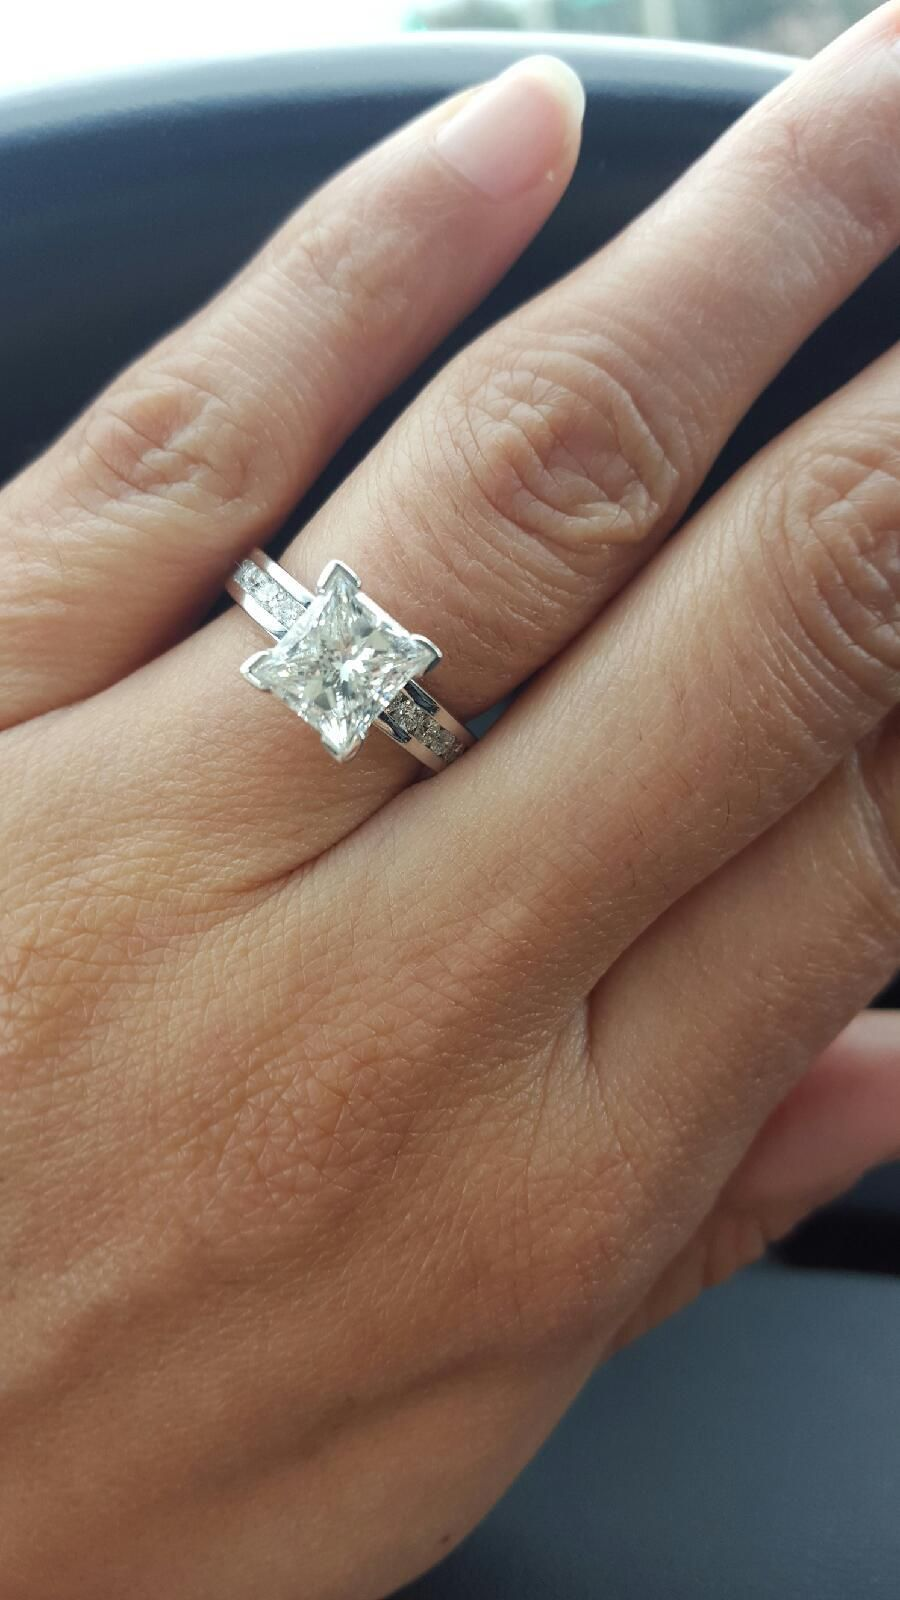 9feddd228 Perfectly cut Princess diamond engagement ring... she said yes! ❤  Congratulations to the newly engaged couple! Thank you for sharing your  precious moment ...